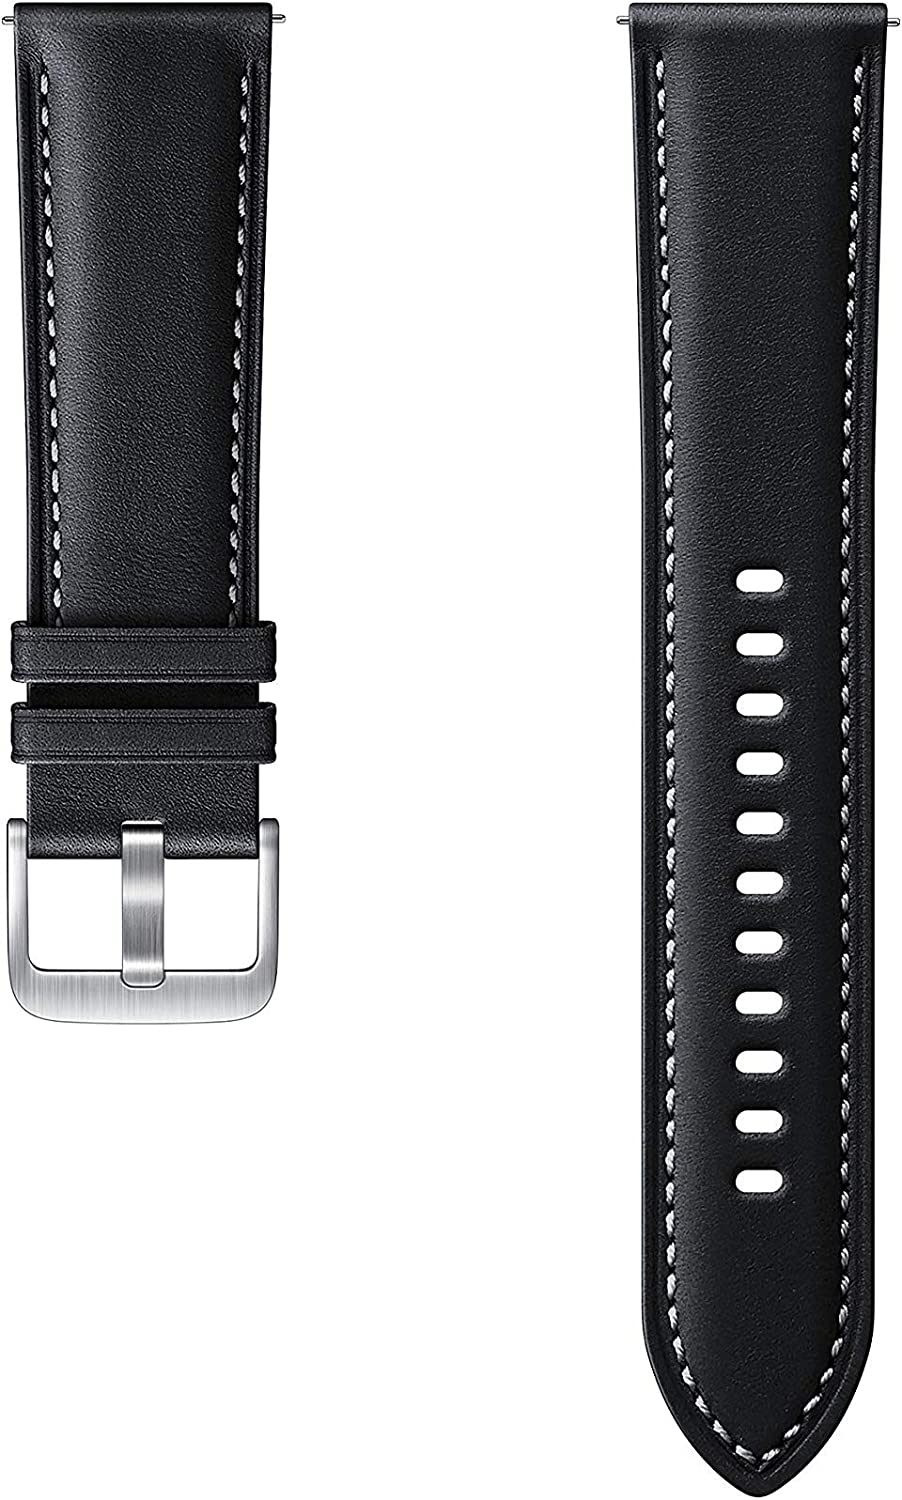 Galaxy Watch3 Stitch Deluxe Leather Band Now on sale